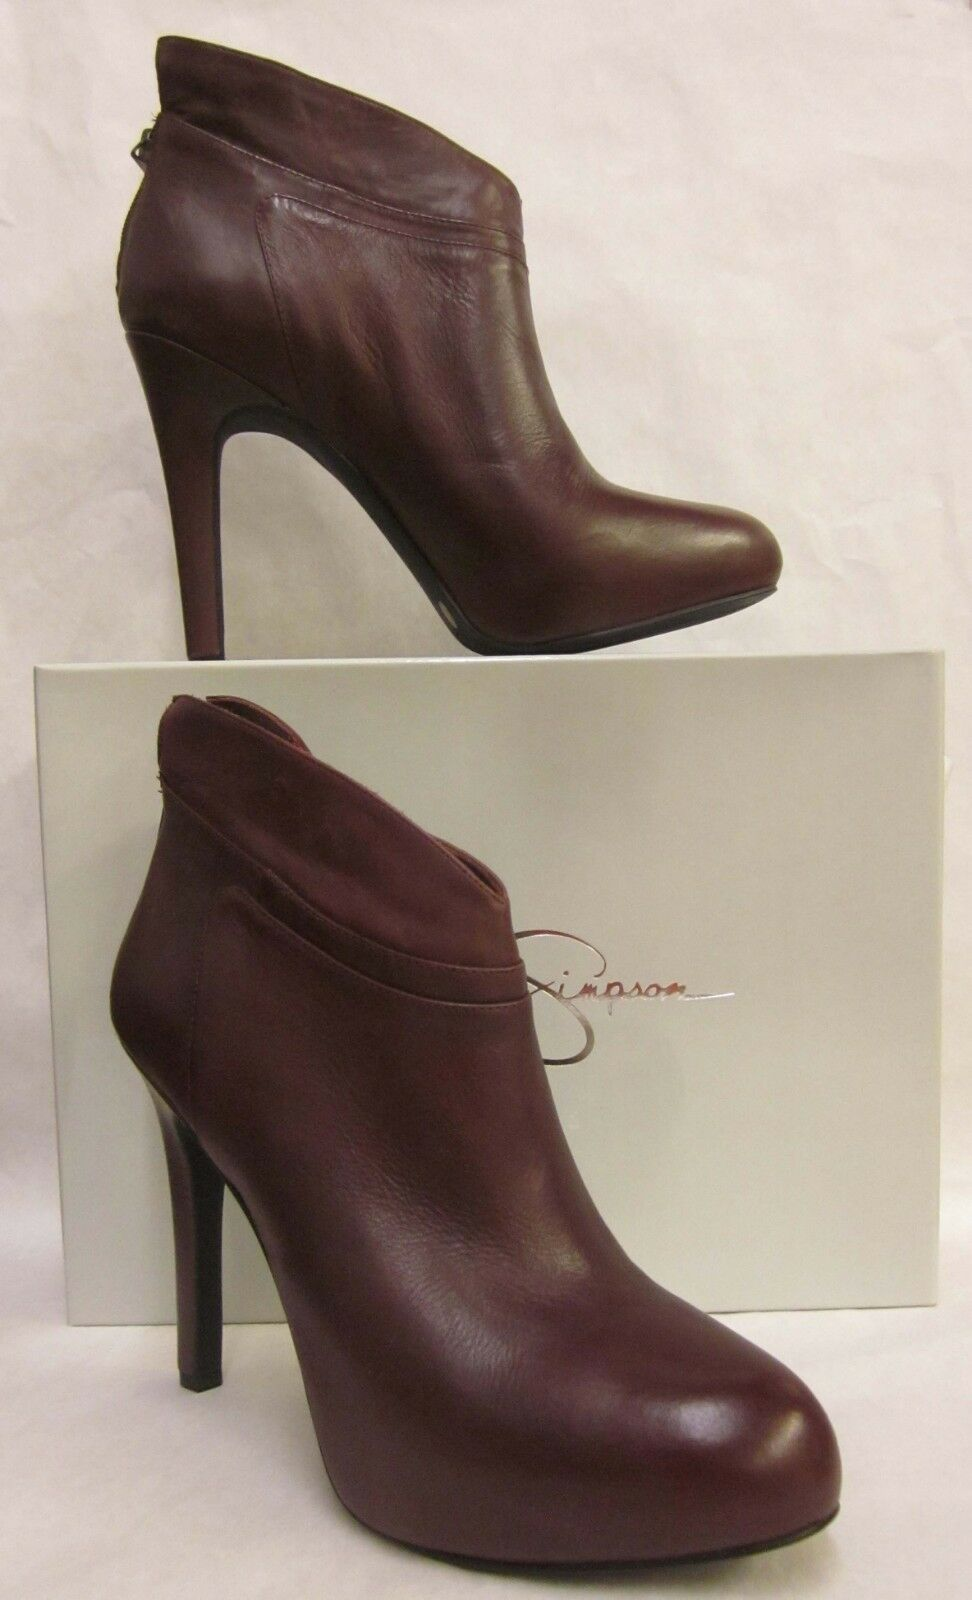 Jessica Simpson Aggie Wine Ankle Boots - size 11